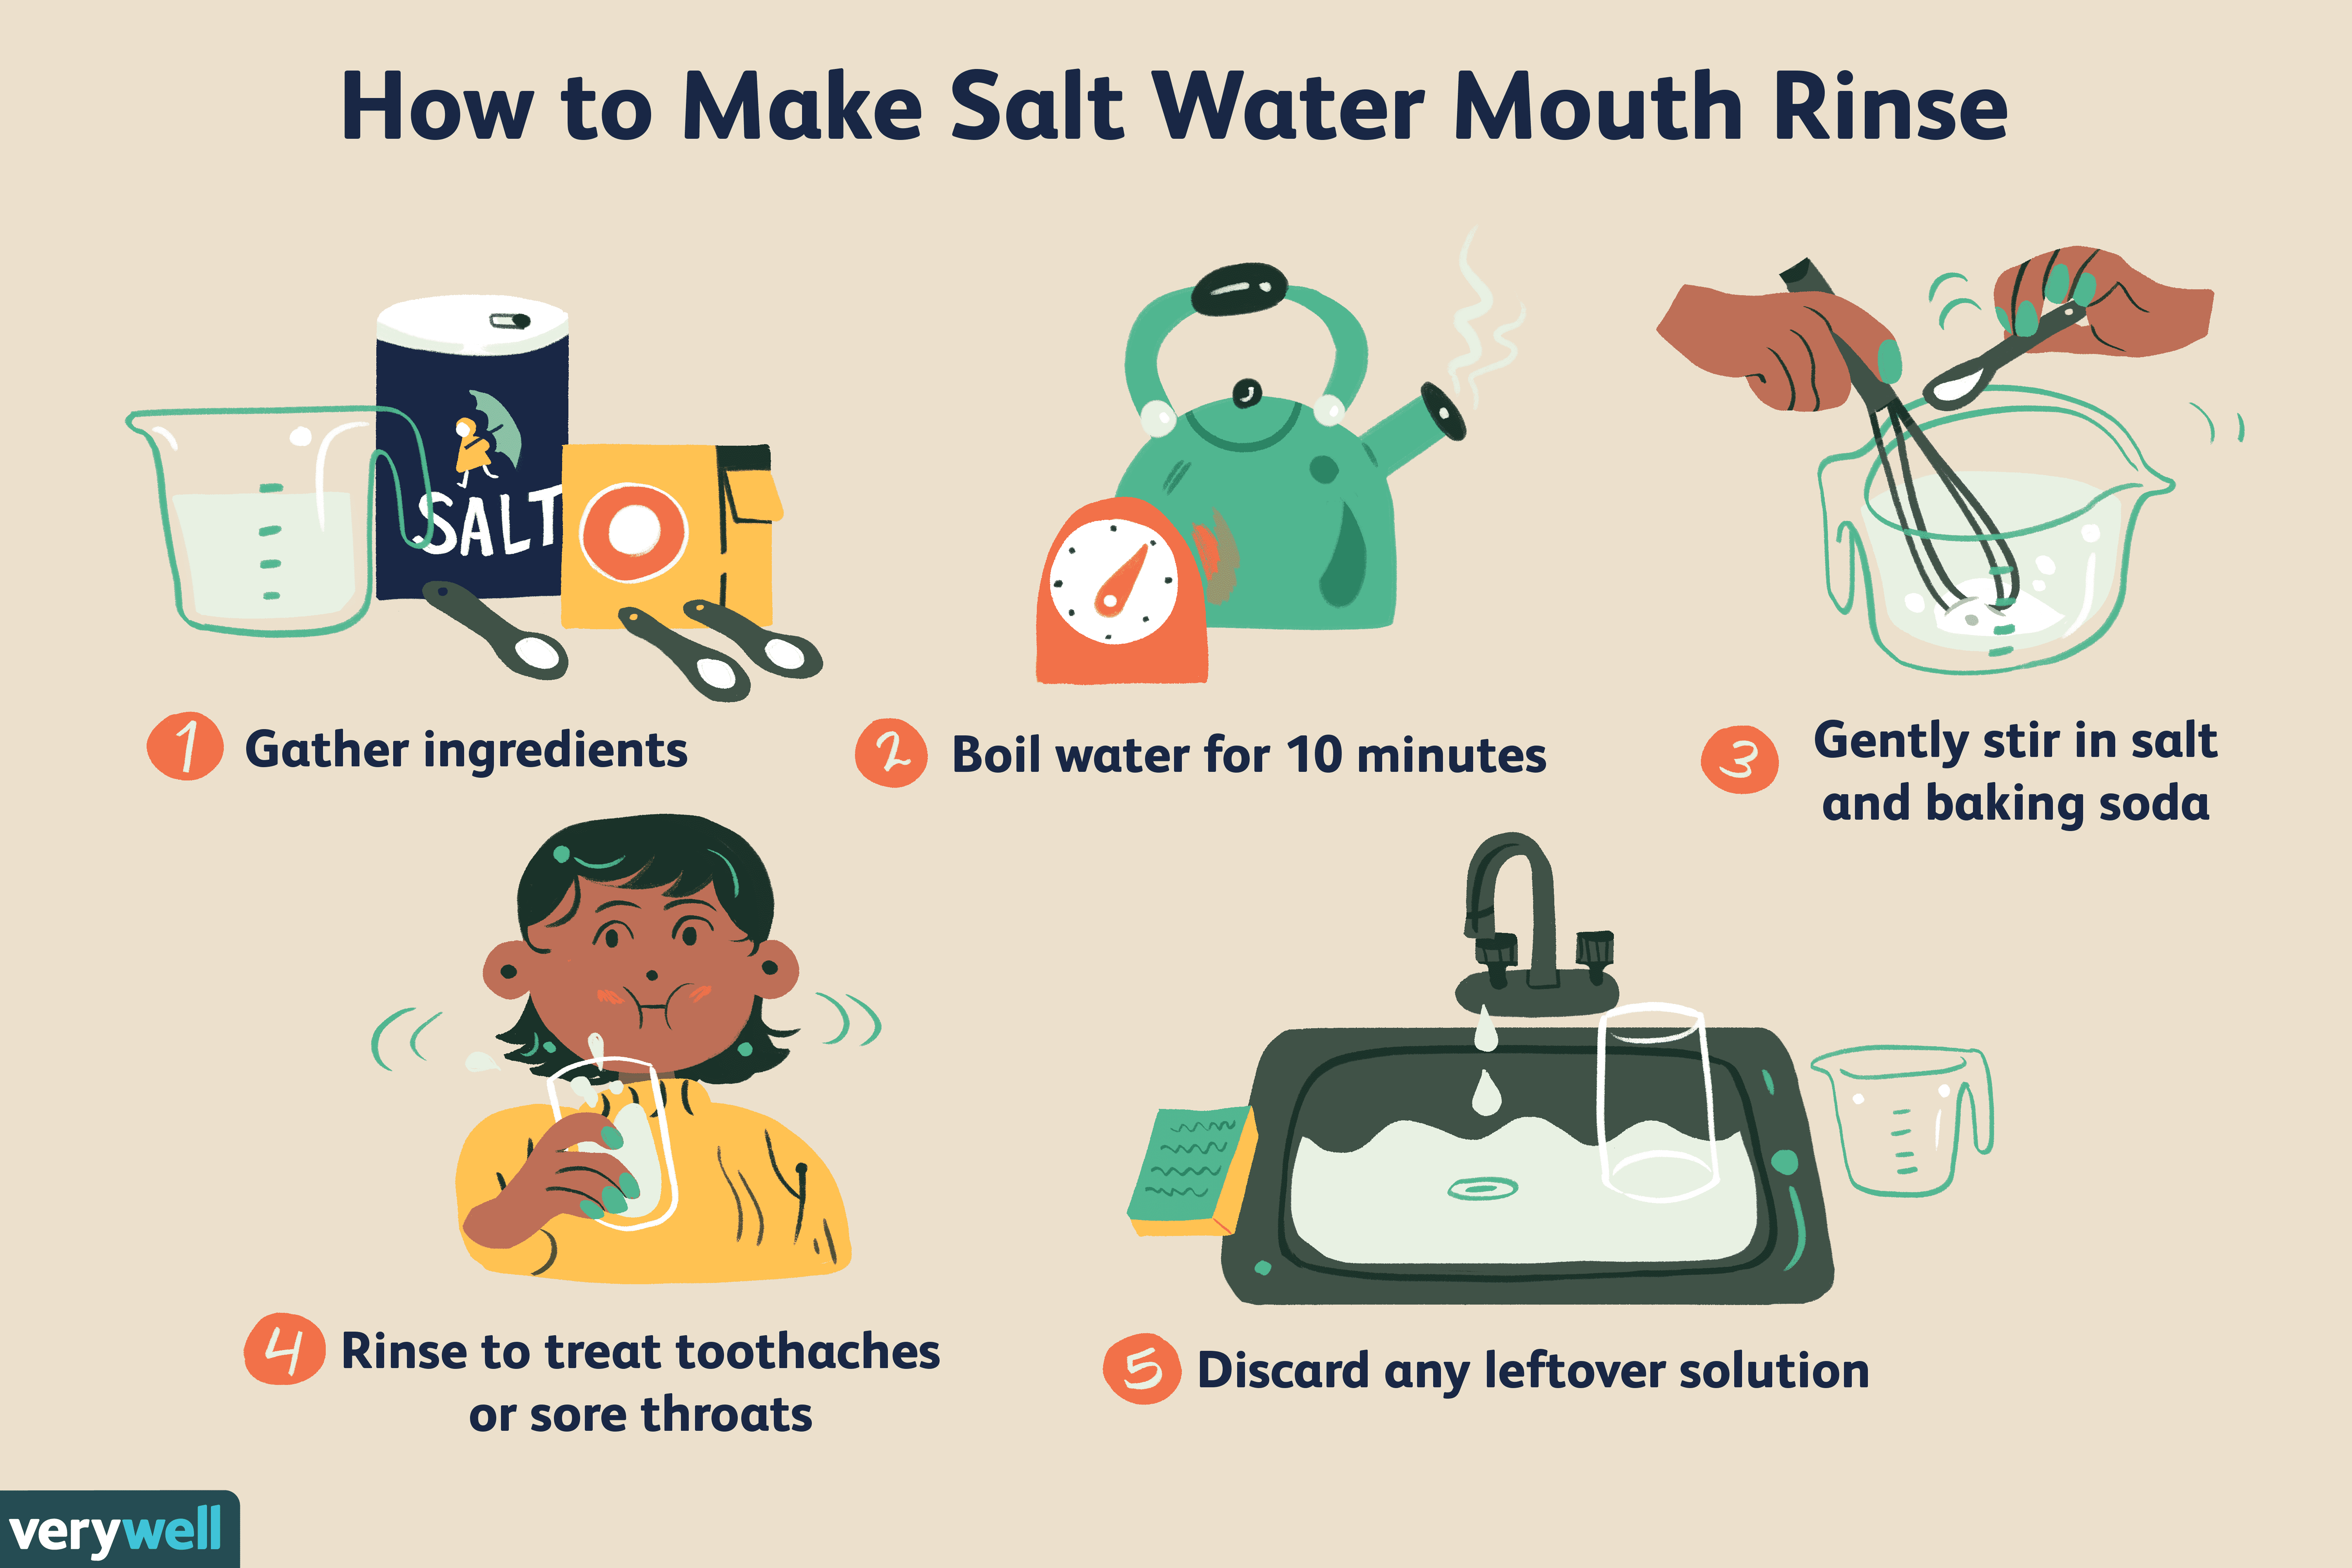 Saline Solution or Salt Water Mouth Rinse